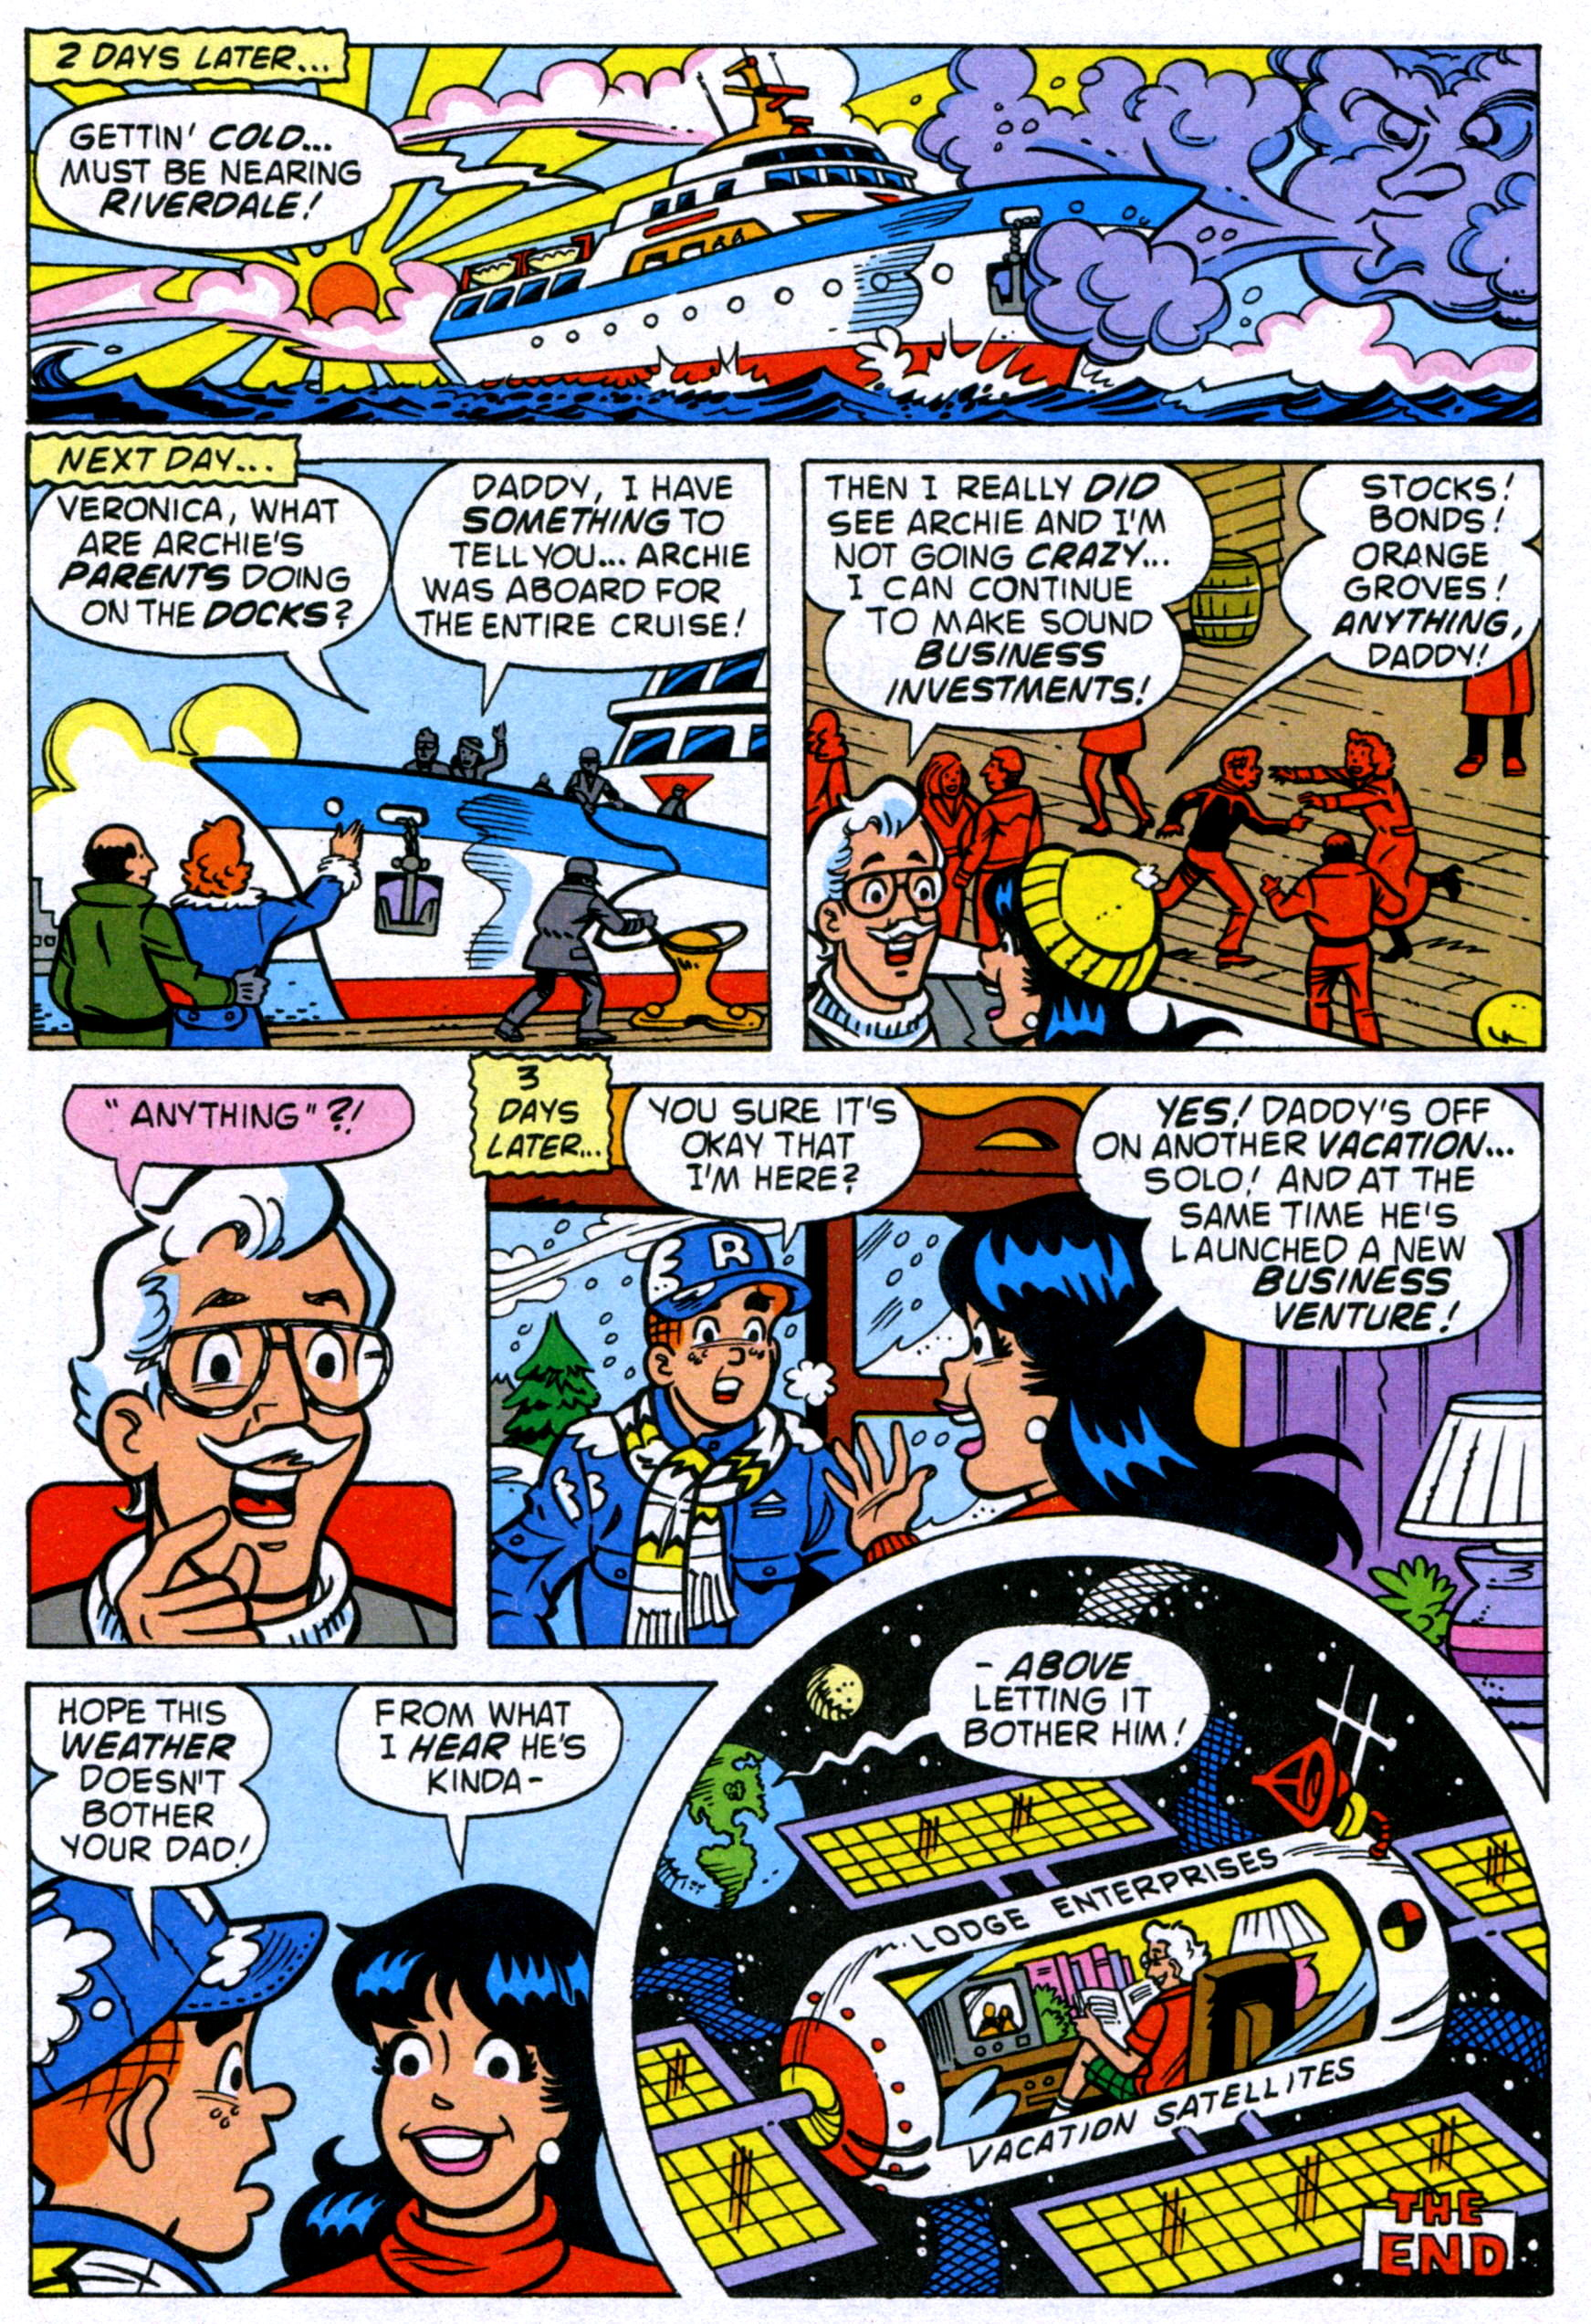 Read online World of Archie comic -  Issue #14 - 17